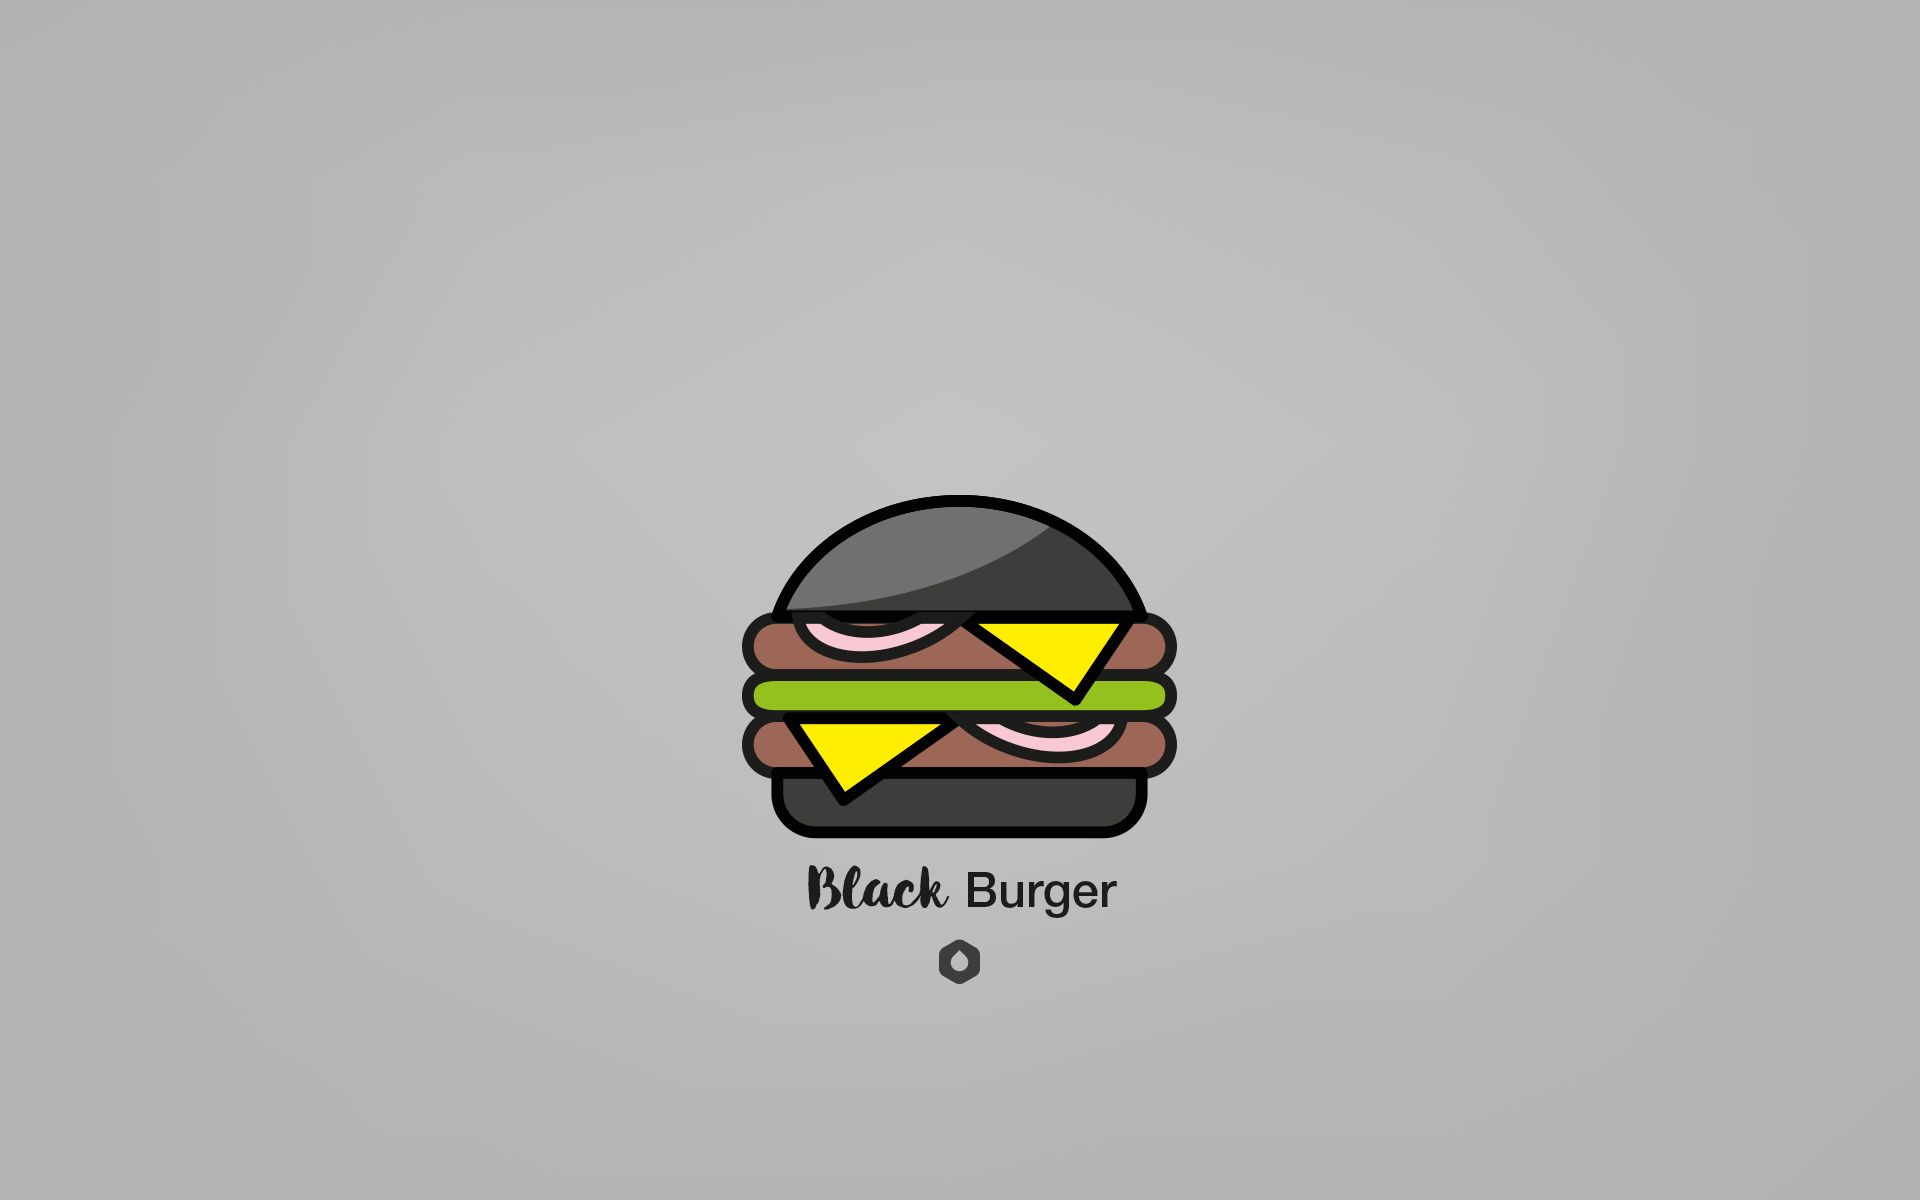 Wallpaper Pick Your Burger - DesktopHD - Black